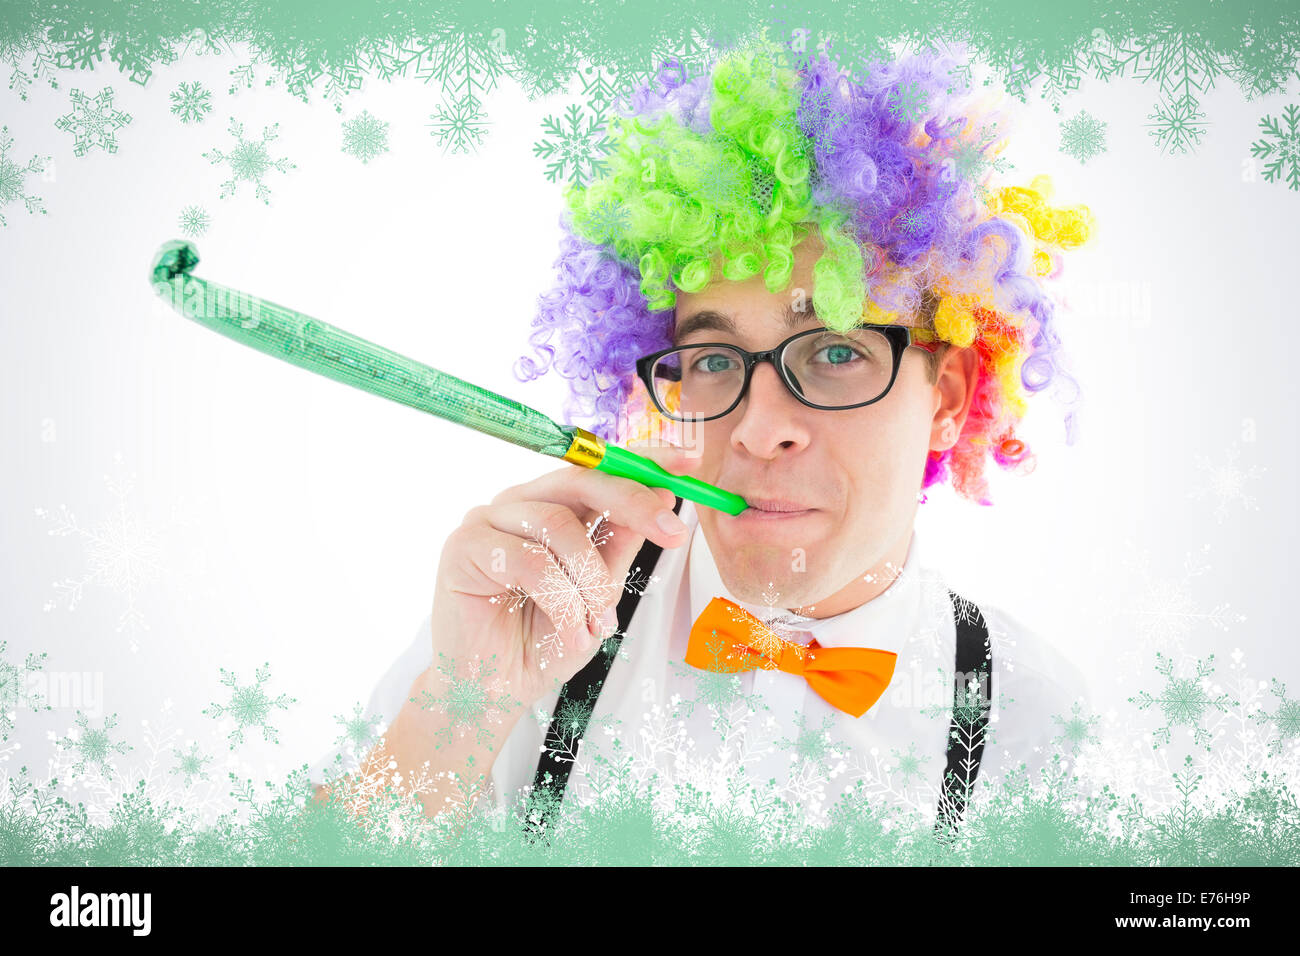 Composite image of geeky hipster wearing a rainbow wig blowing party horn Stock Photo